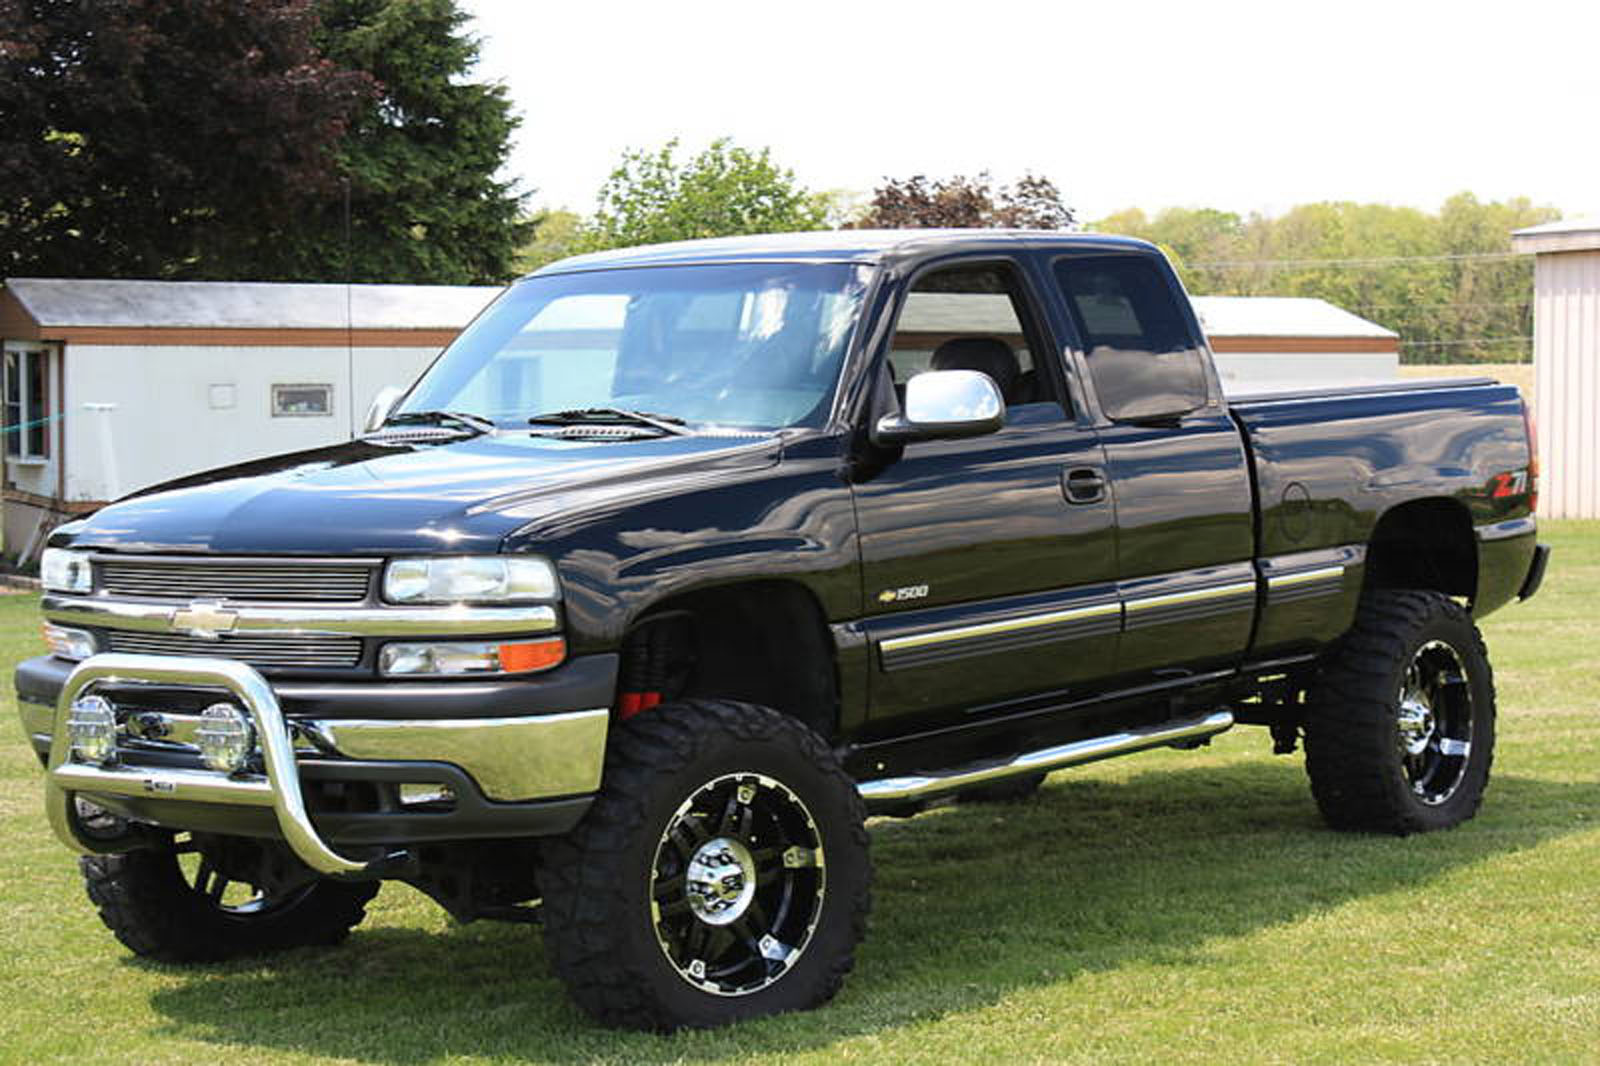 1998 Chevy Z71 4x4 Lifted